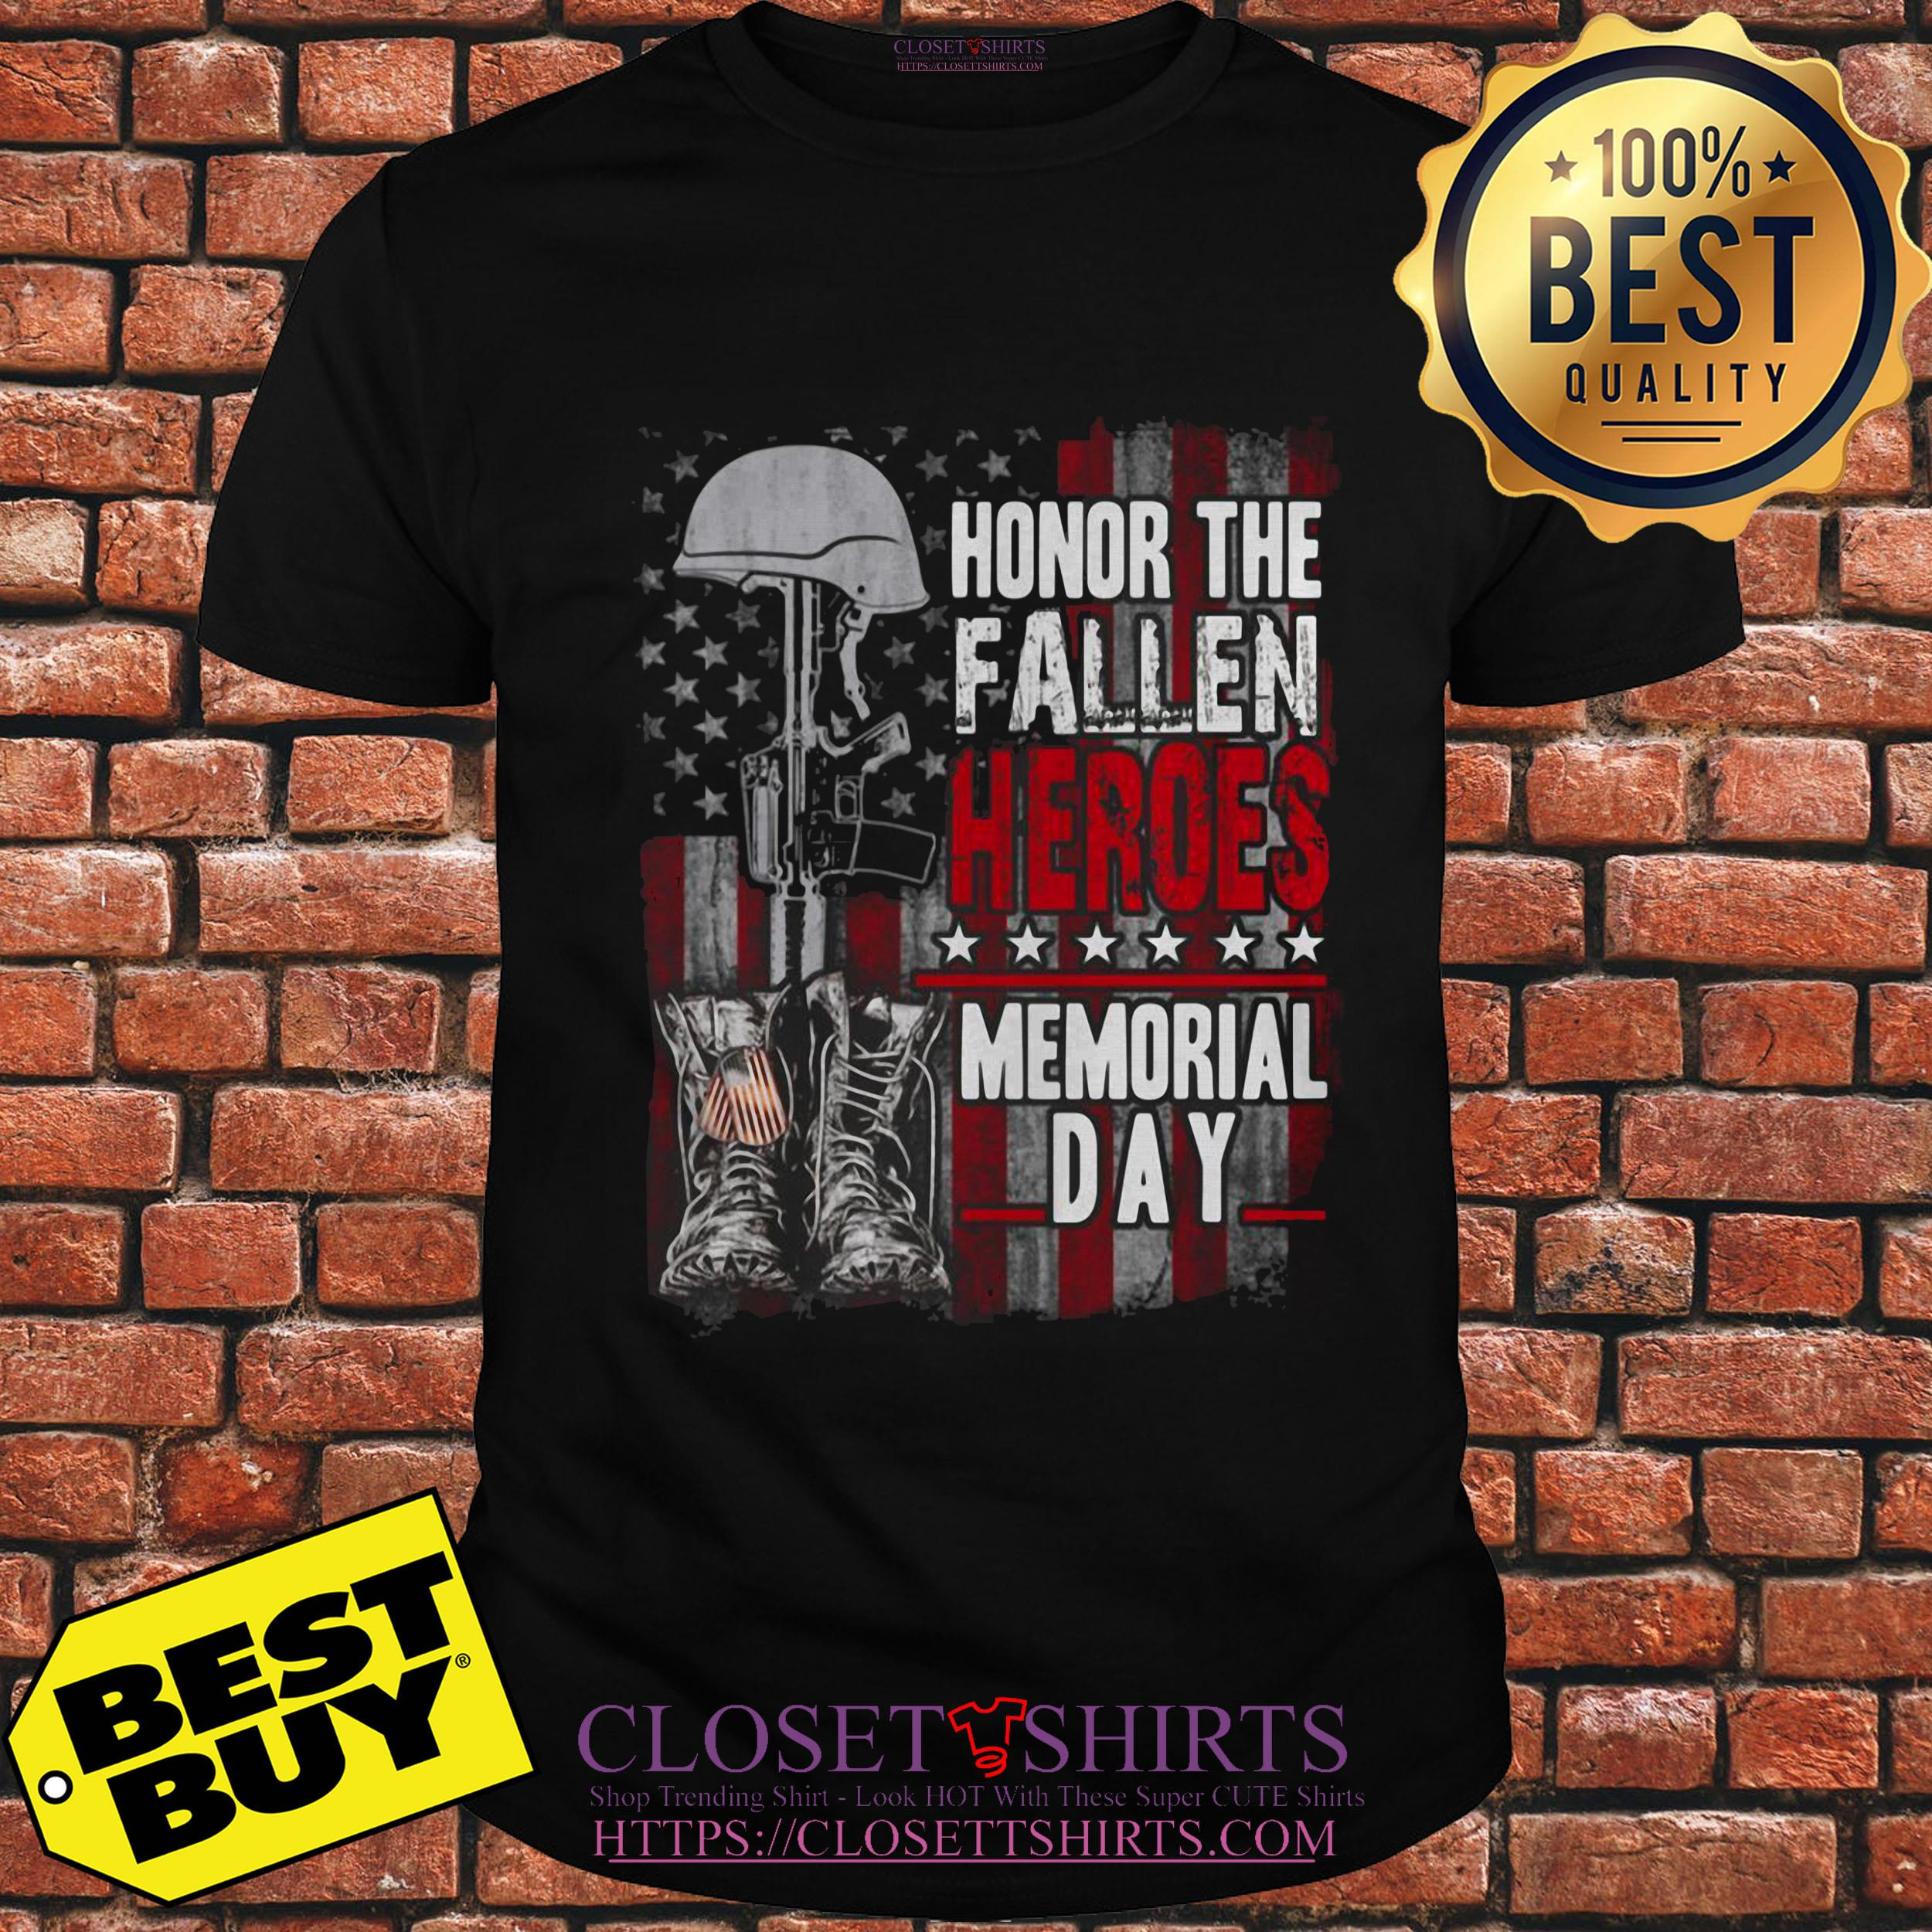 pretty nice 87047 deea5 Honor the fallen heroes memorial day Patriot veterans shirt ...